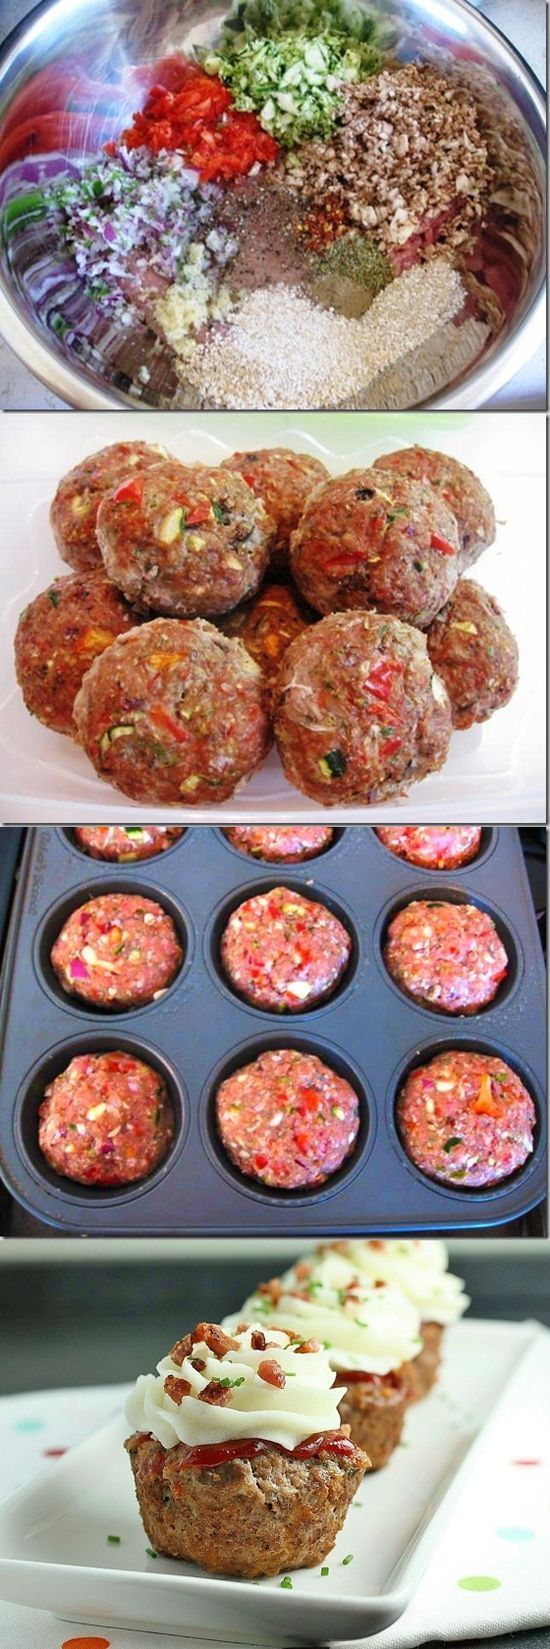 Meatball cupcakes: replace store-bought breadcrumbs with homemade to eliminate sugar and use mashed cauliflower on top instead of potatoes.